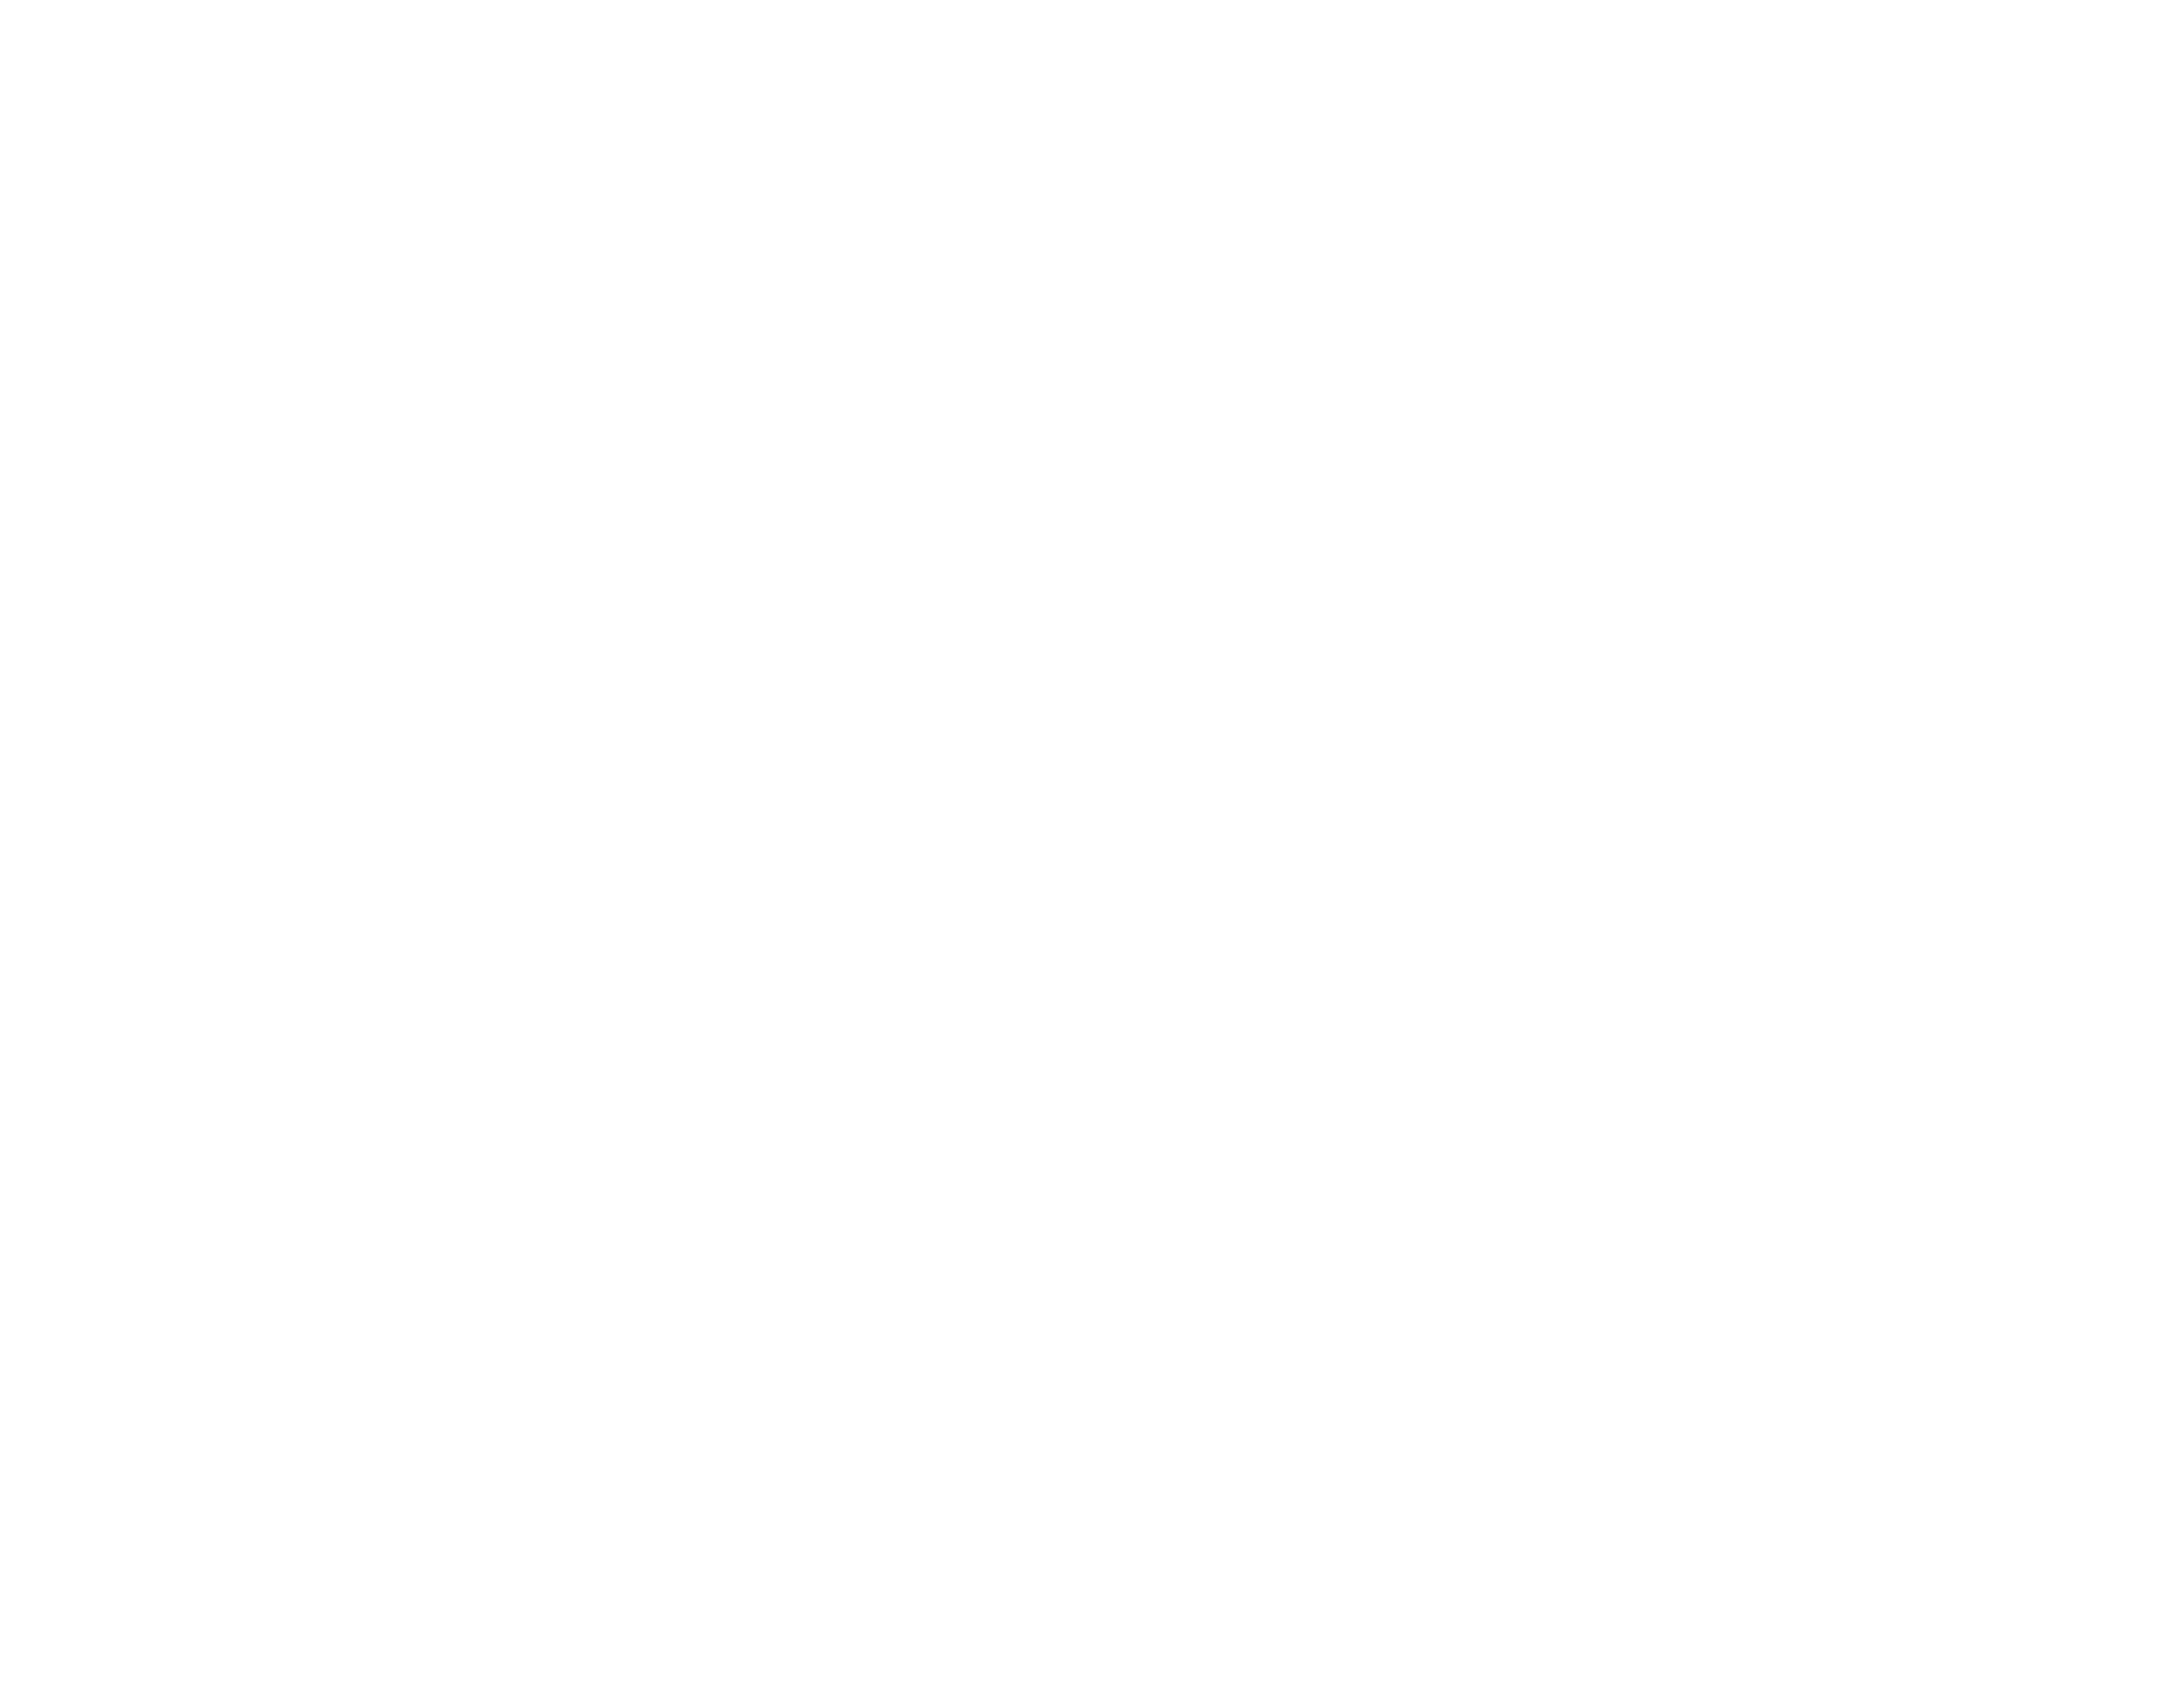 Home | Downtown Garner